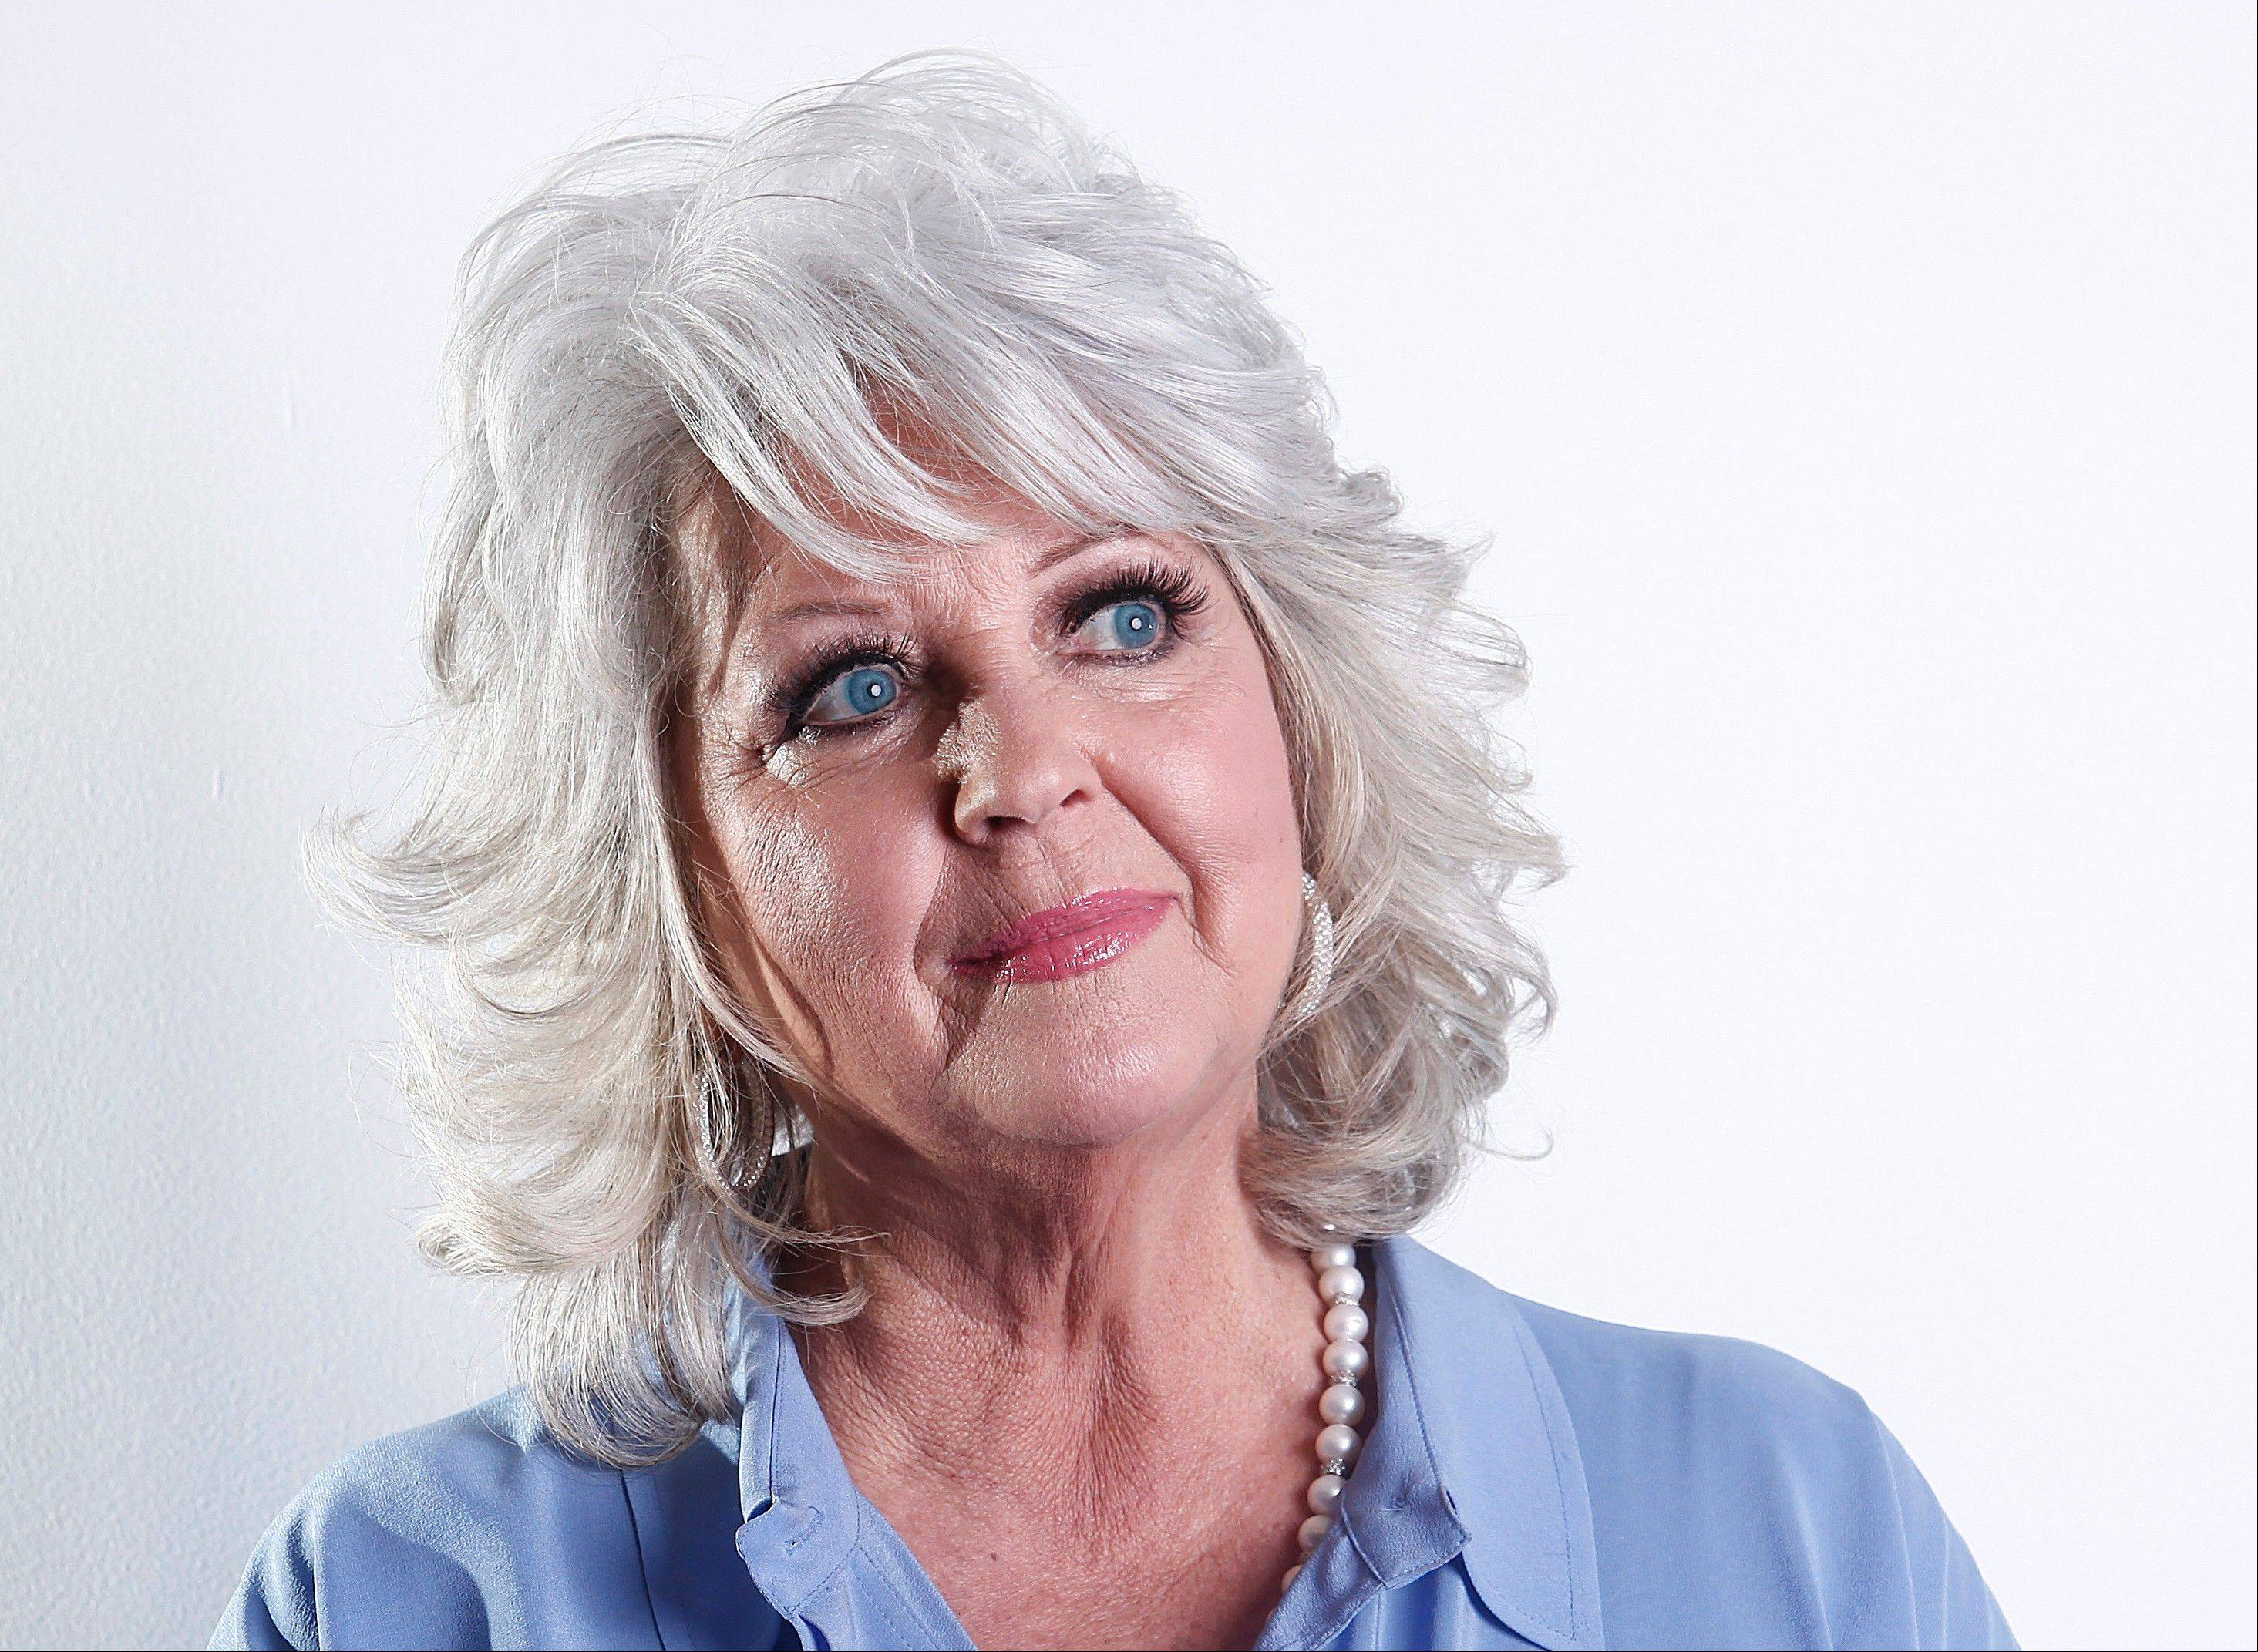 A week after celebrity chef Paula Deen's admission of using racial slurs in the past surfaced in a discrimination lawsuit, pop culture watchers, experts in managing public relations nightmares and civil rights stalwarts who have tried to help other celebrities in her position see a long, bumpy road ahead.